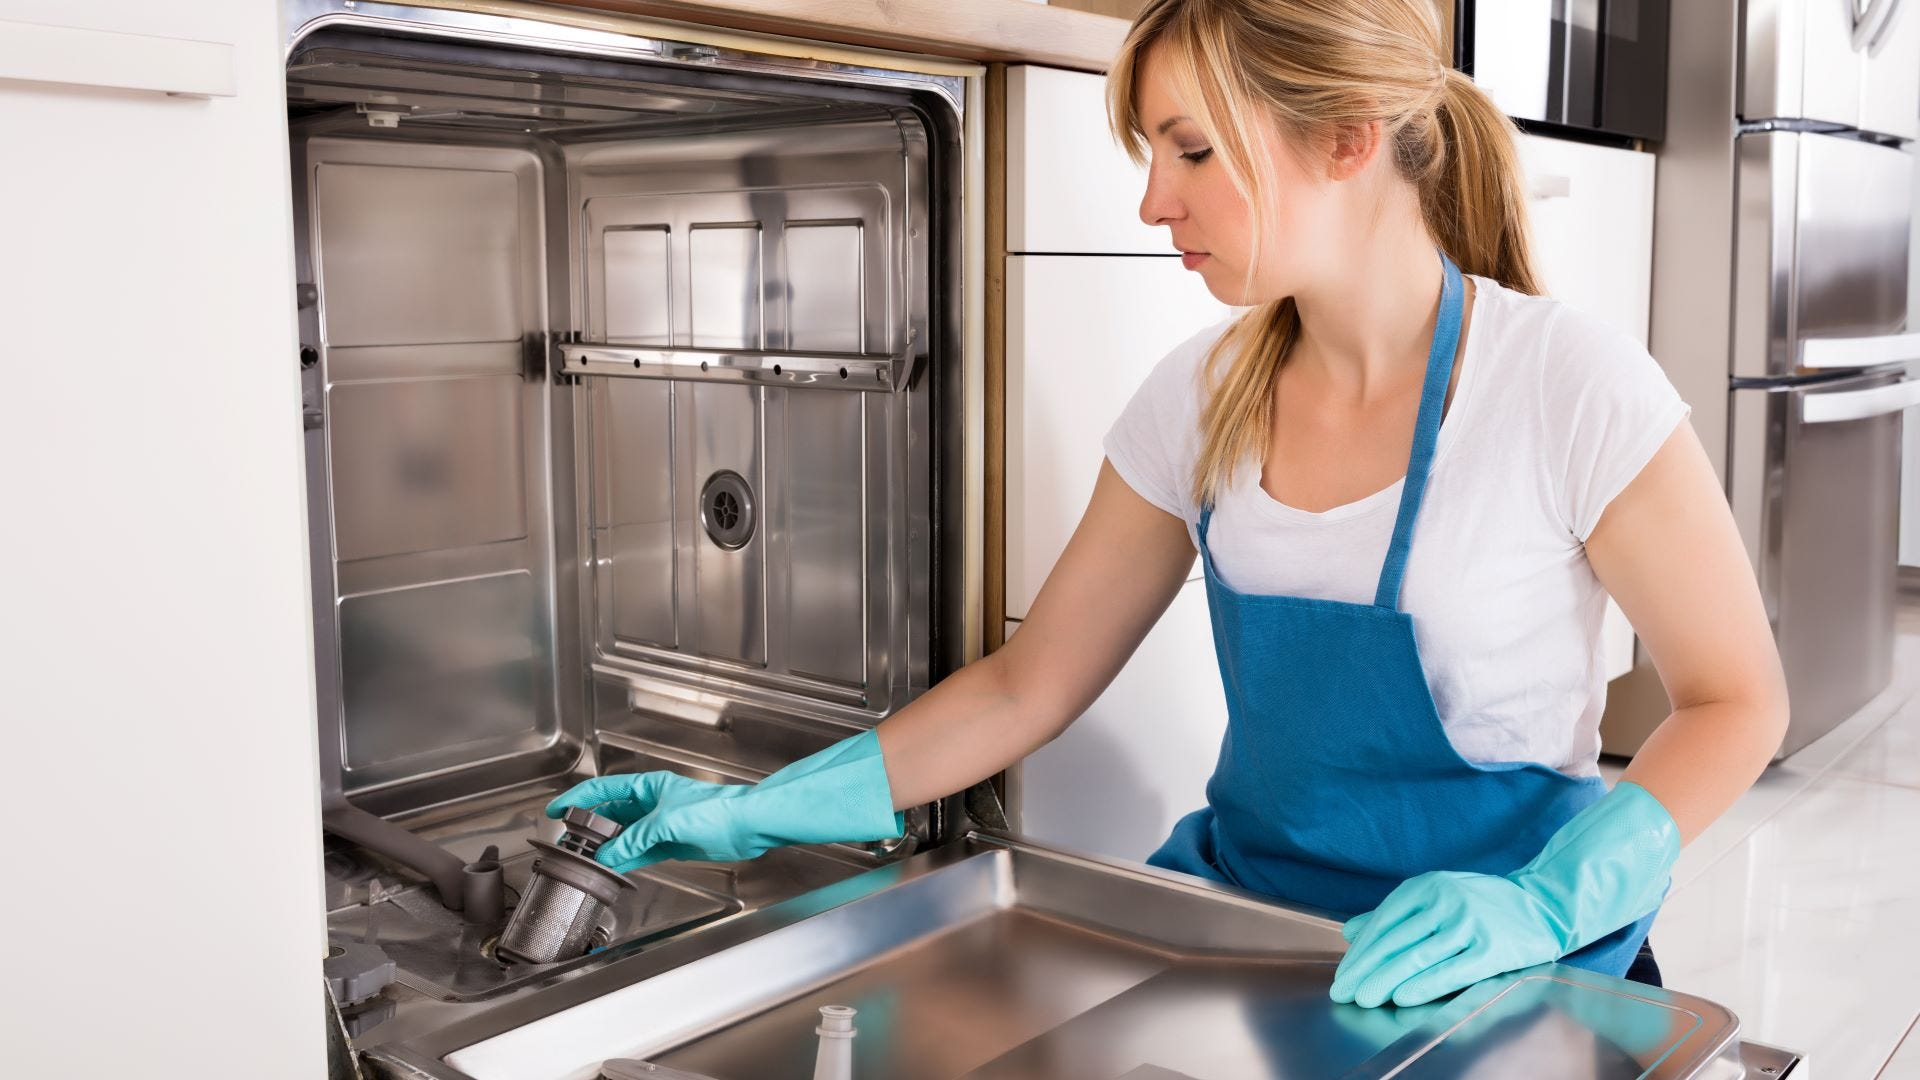 A woman wearing rubber gloves and cleaning a dishwasher.